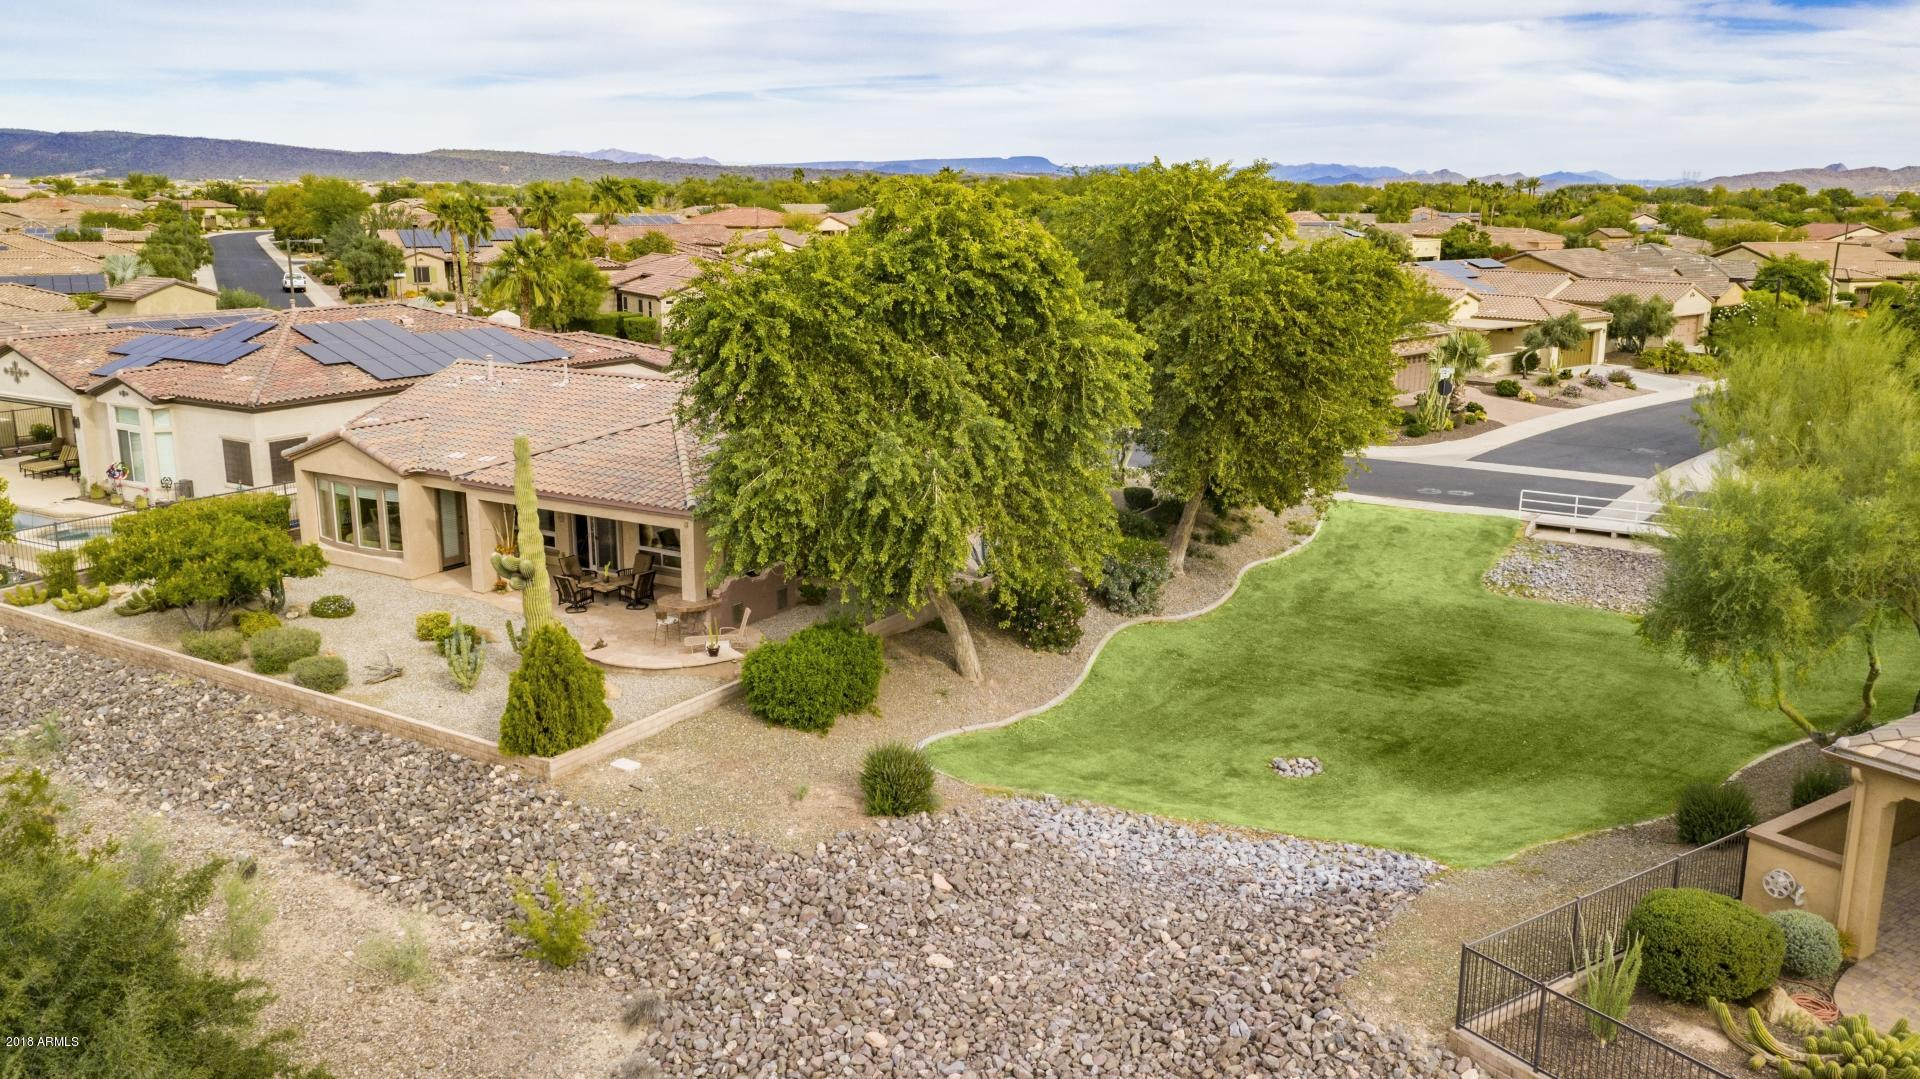 27810 N 130TH Avenue Peoria, AZ 85383 - MLS #: 5854558